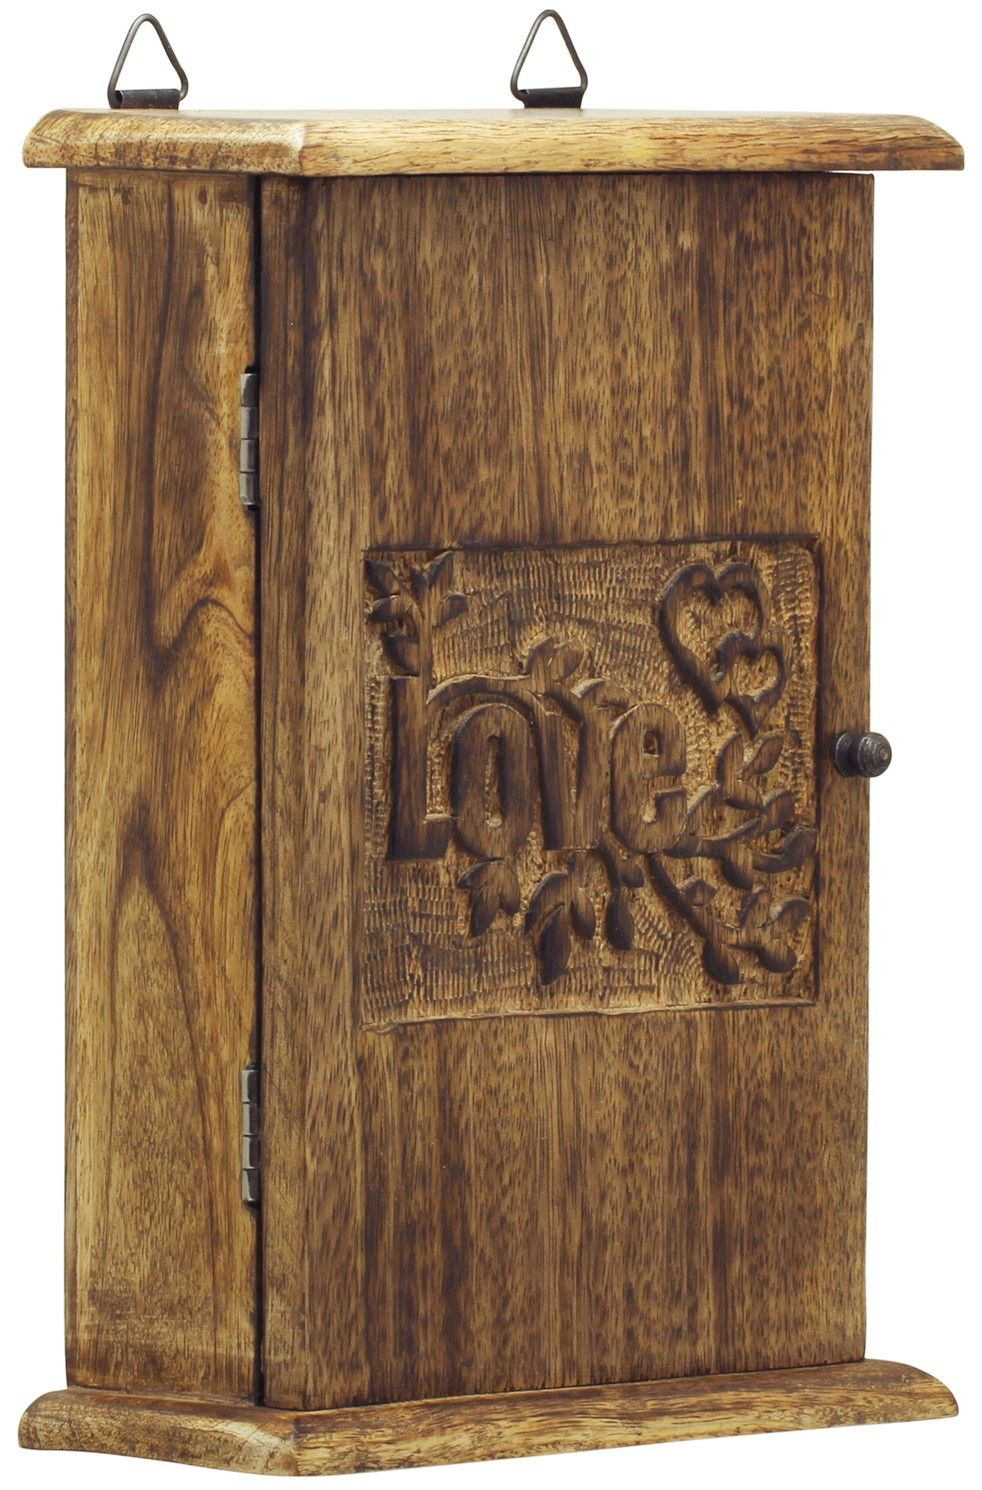 Key To Love Handmade 9 6 Key Holder Box With Love Carved In Mango Wood Wooden Key Holder Wall Mounted Key Holder Wood